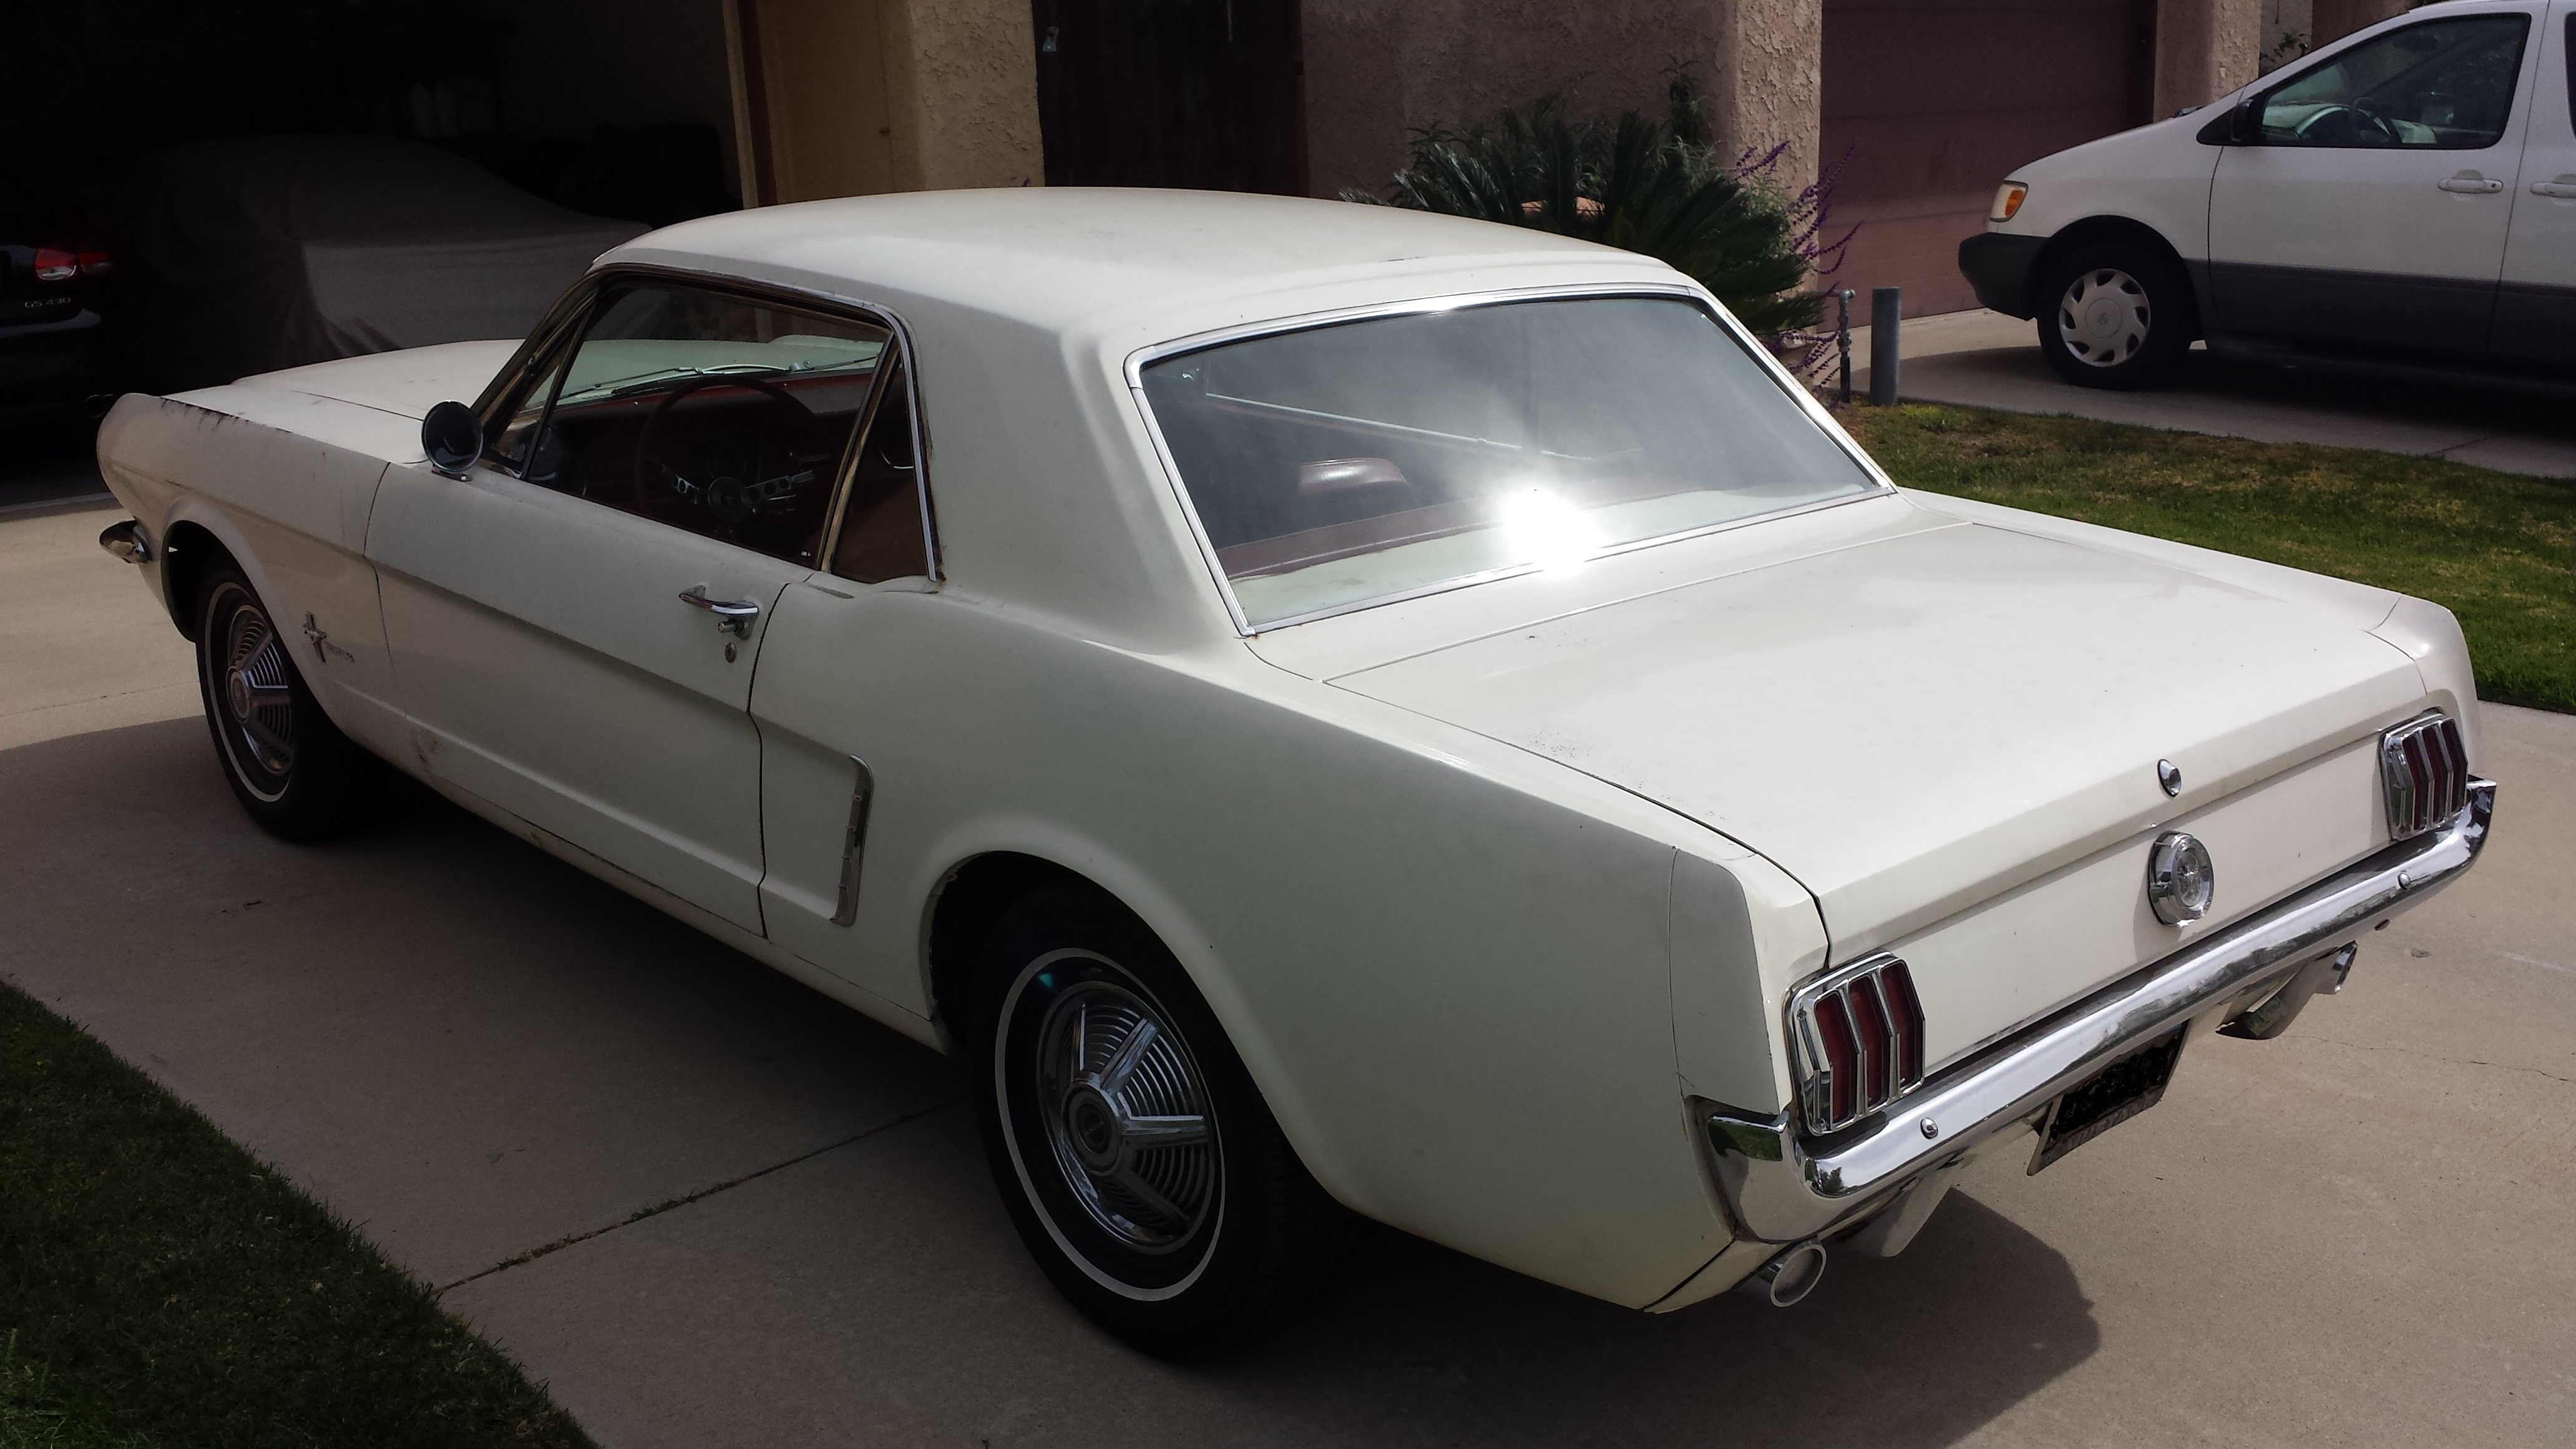 HYPWR65 1965 Ford Mustang